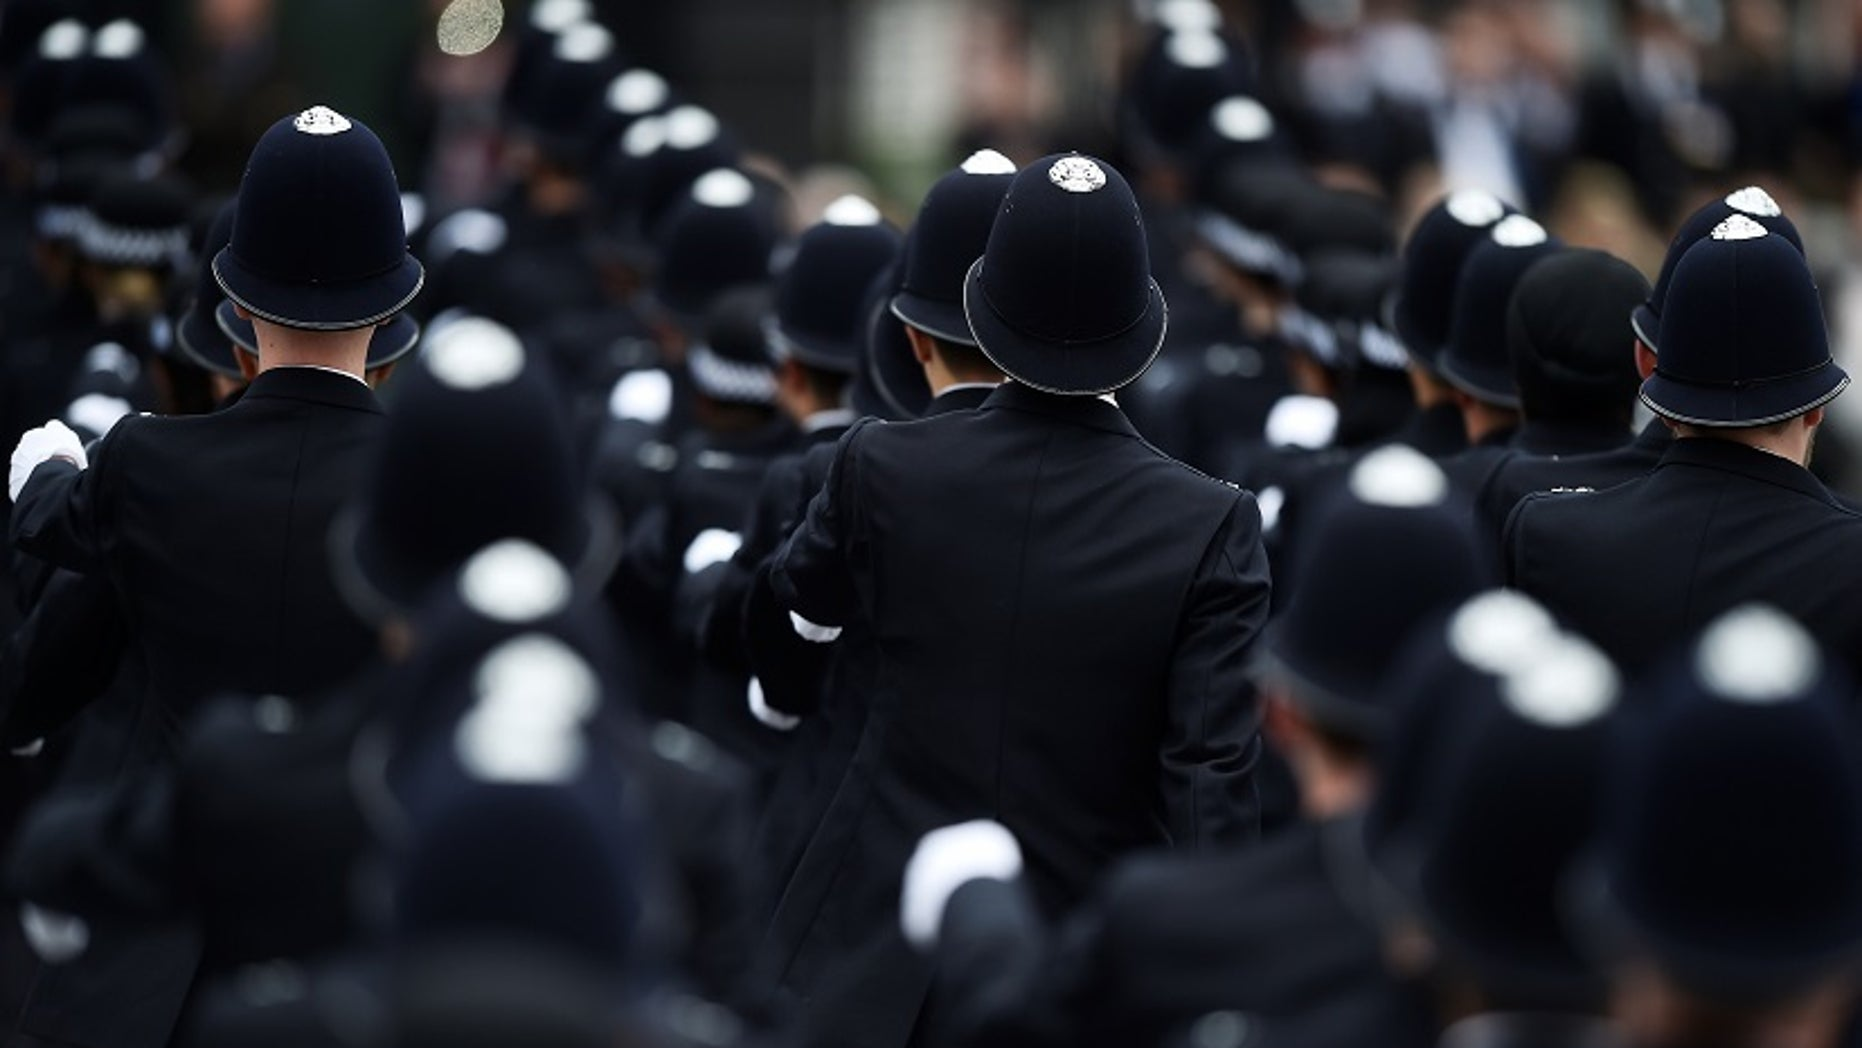 British police have lost track of 485 registered sex offenders across the United Kingdom.